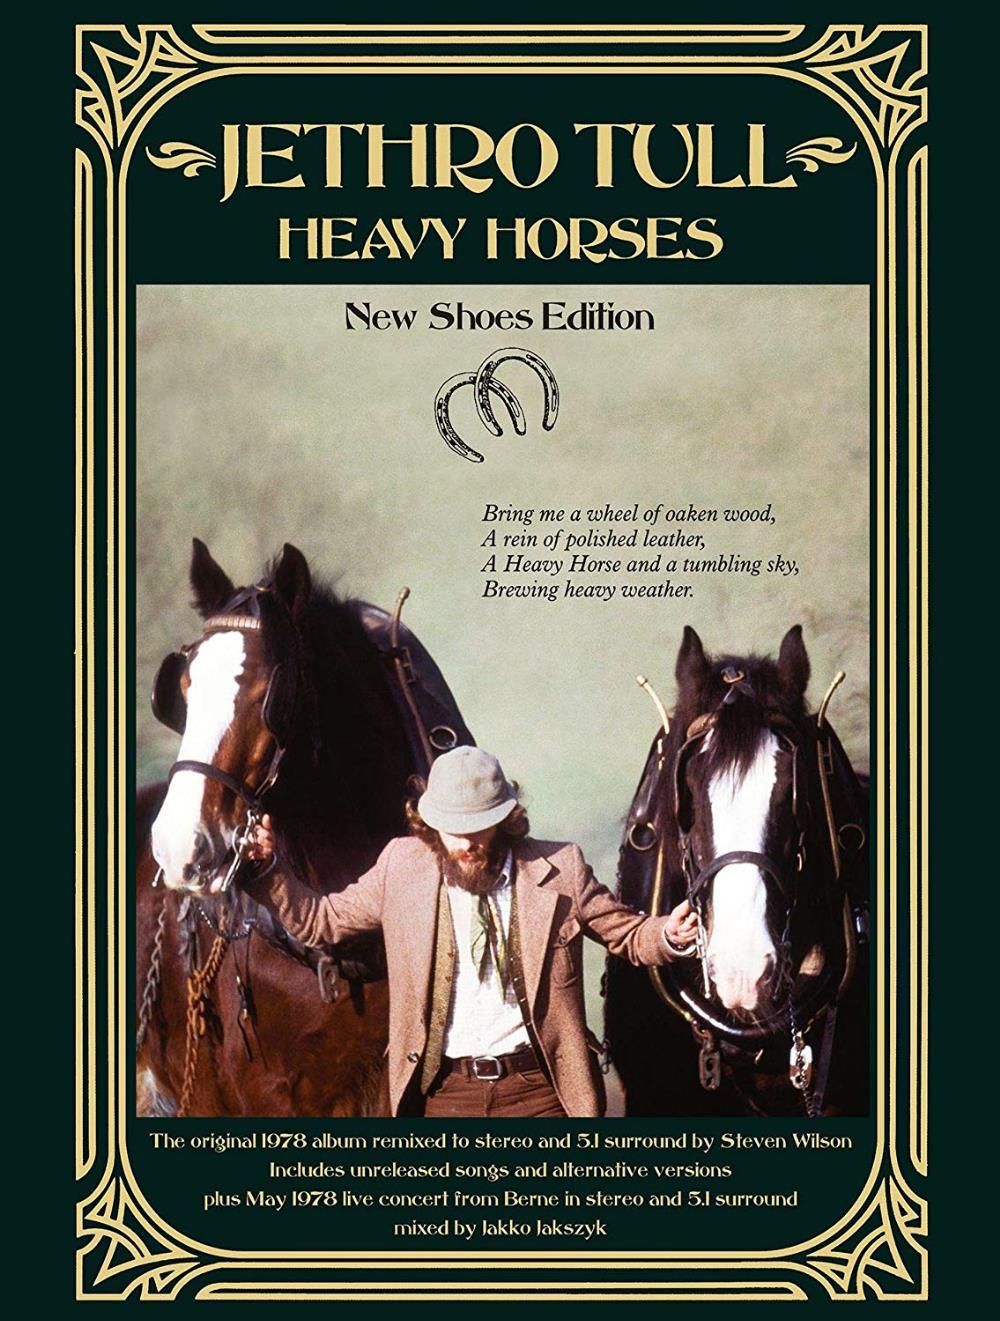 Jethro Tull - Heavy Horses (New Shoes Edition) CD (album) cover